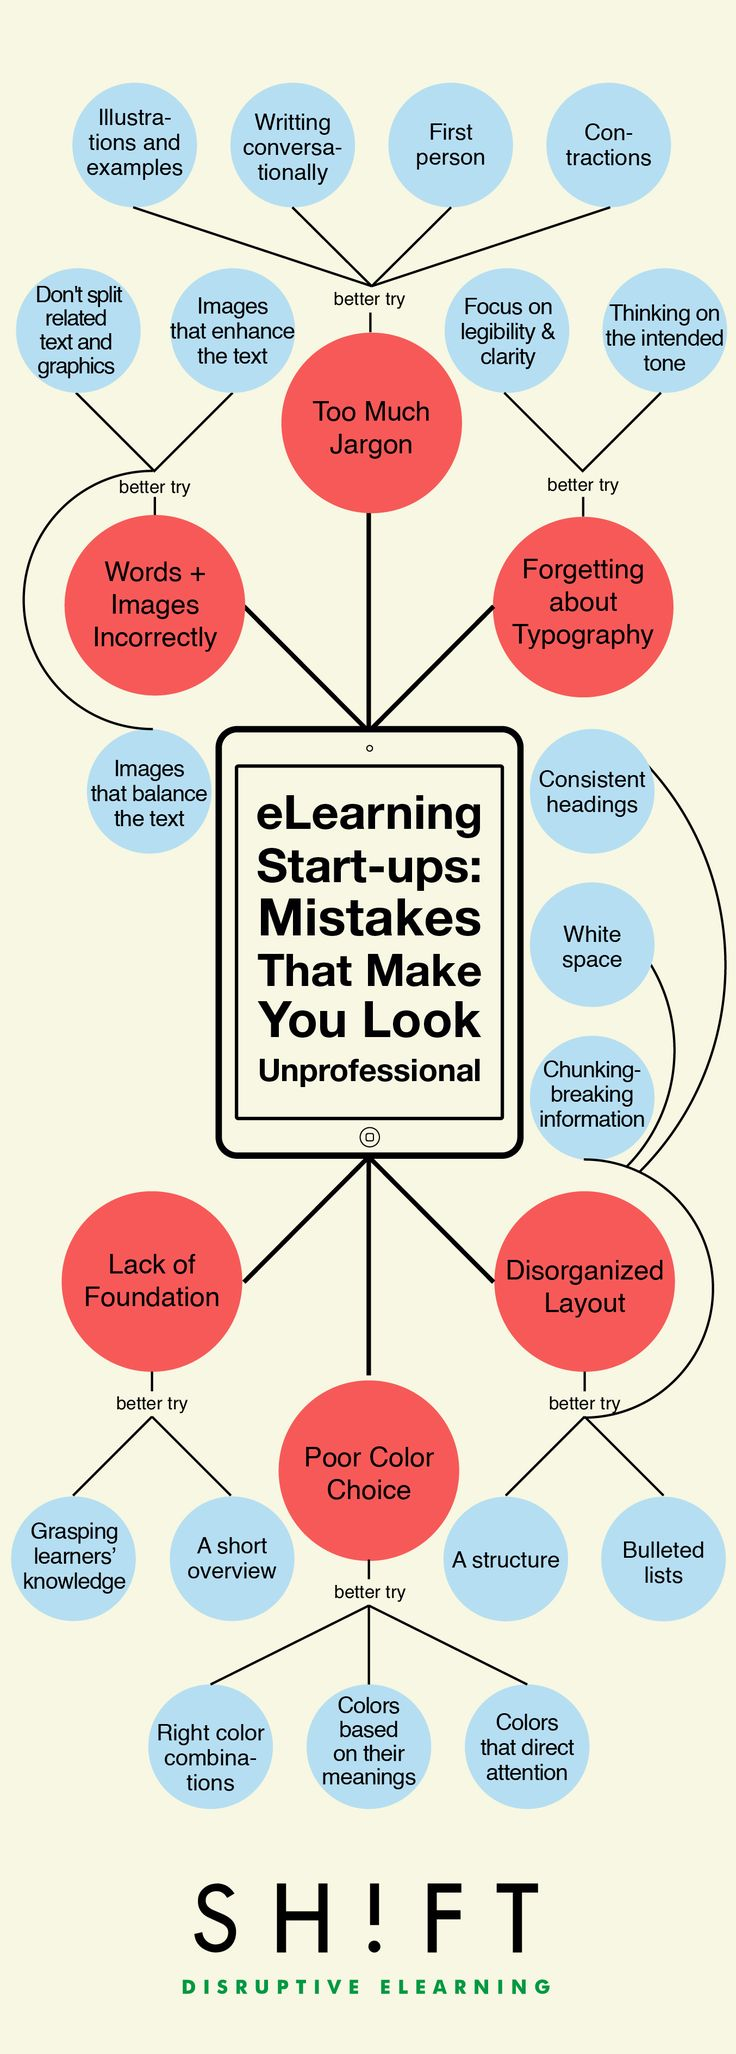 #eLearning Start-ups: These Mistakes Will Make You Look Unprofessional